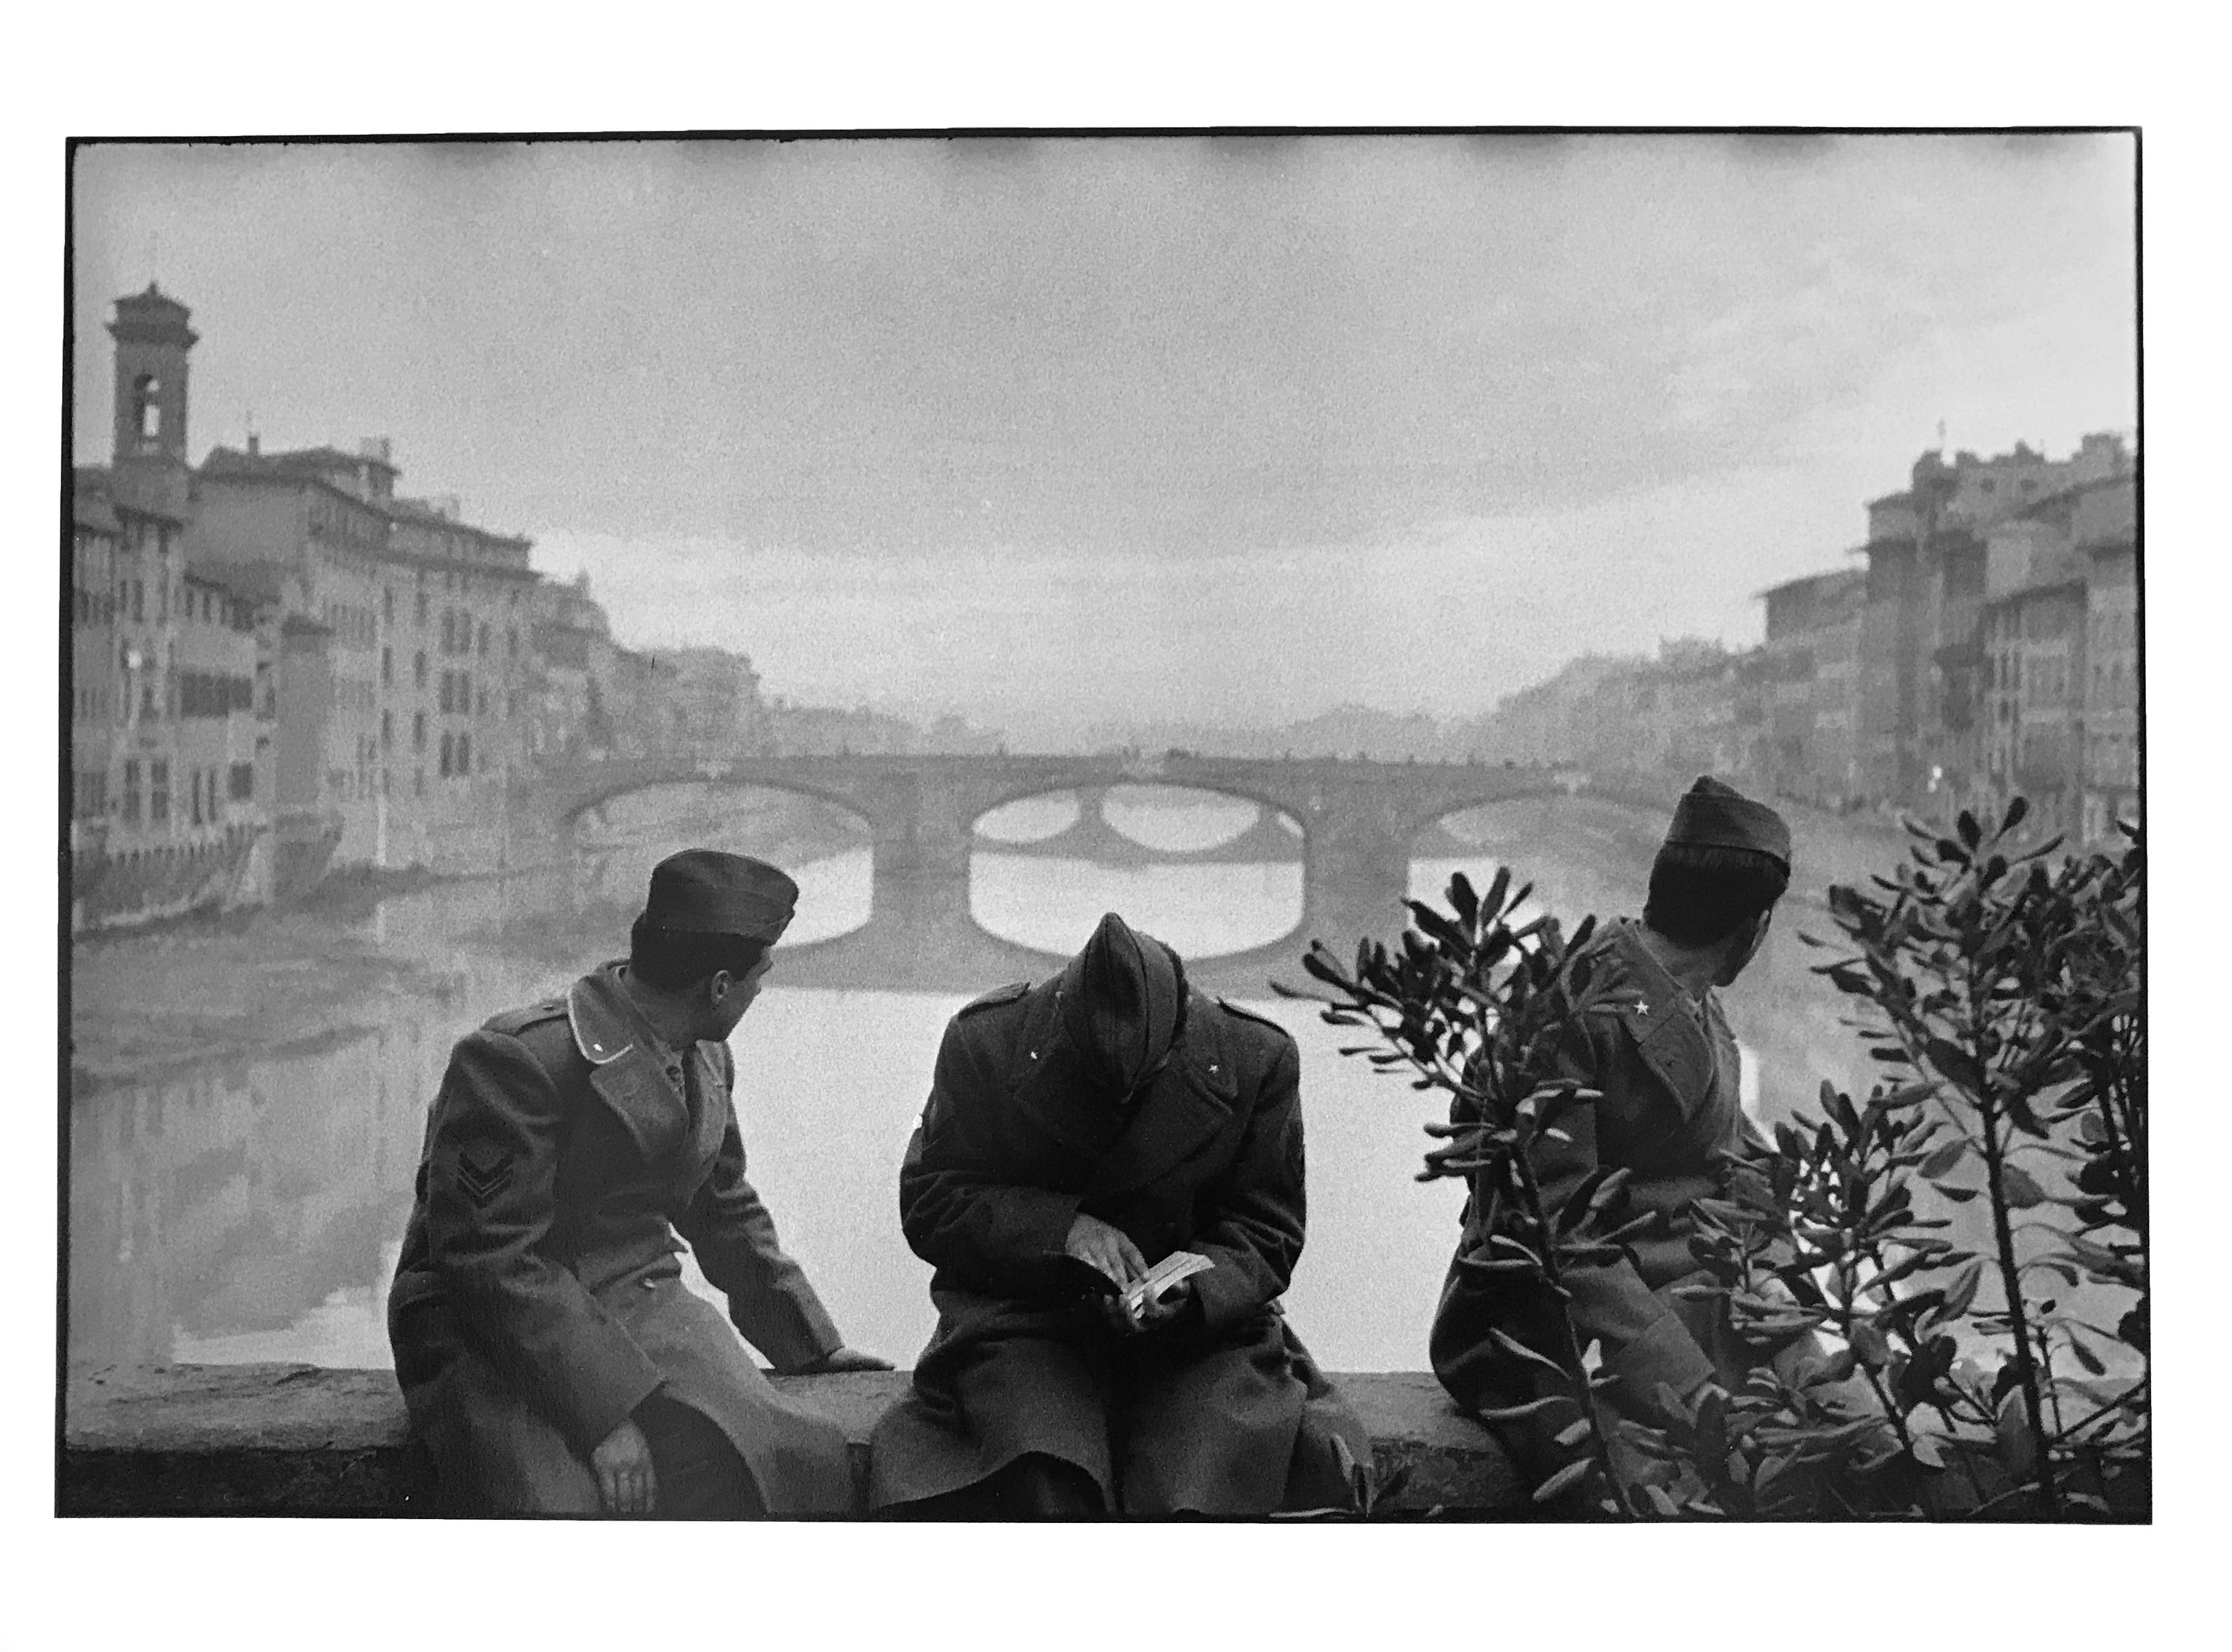 Arno river florence italy a black and white documentary photo of soldiers